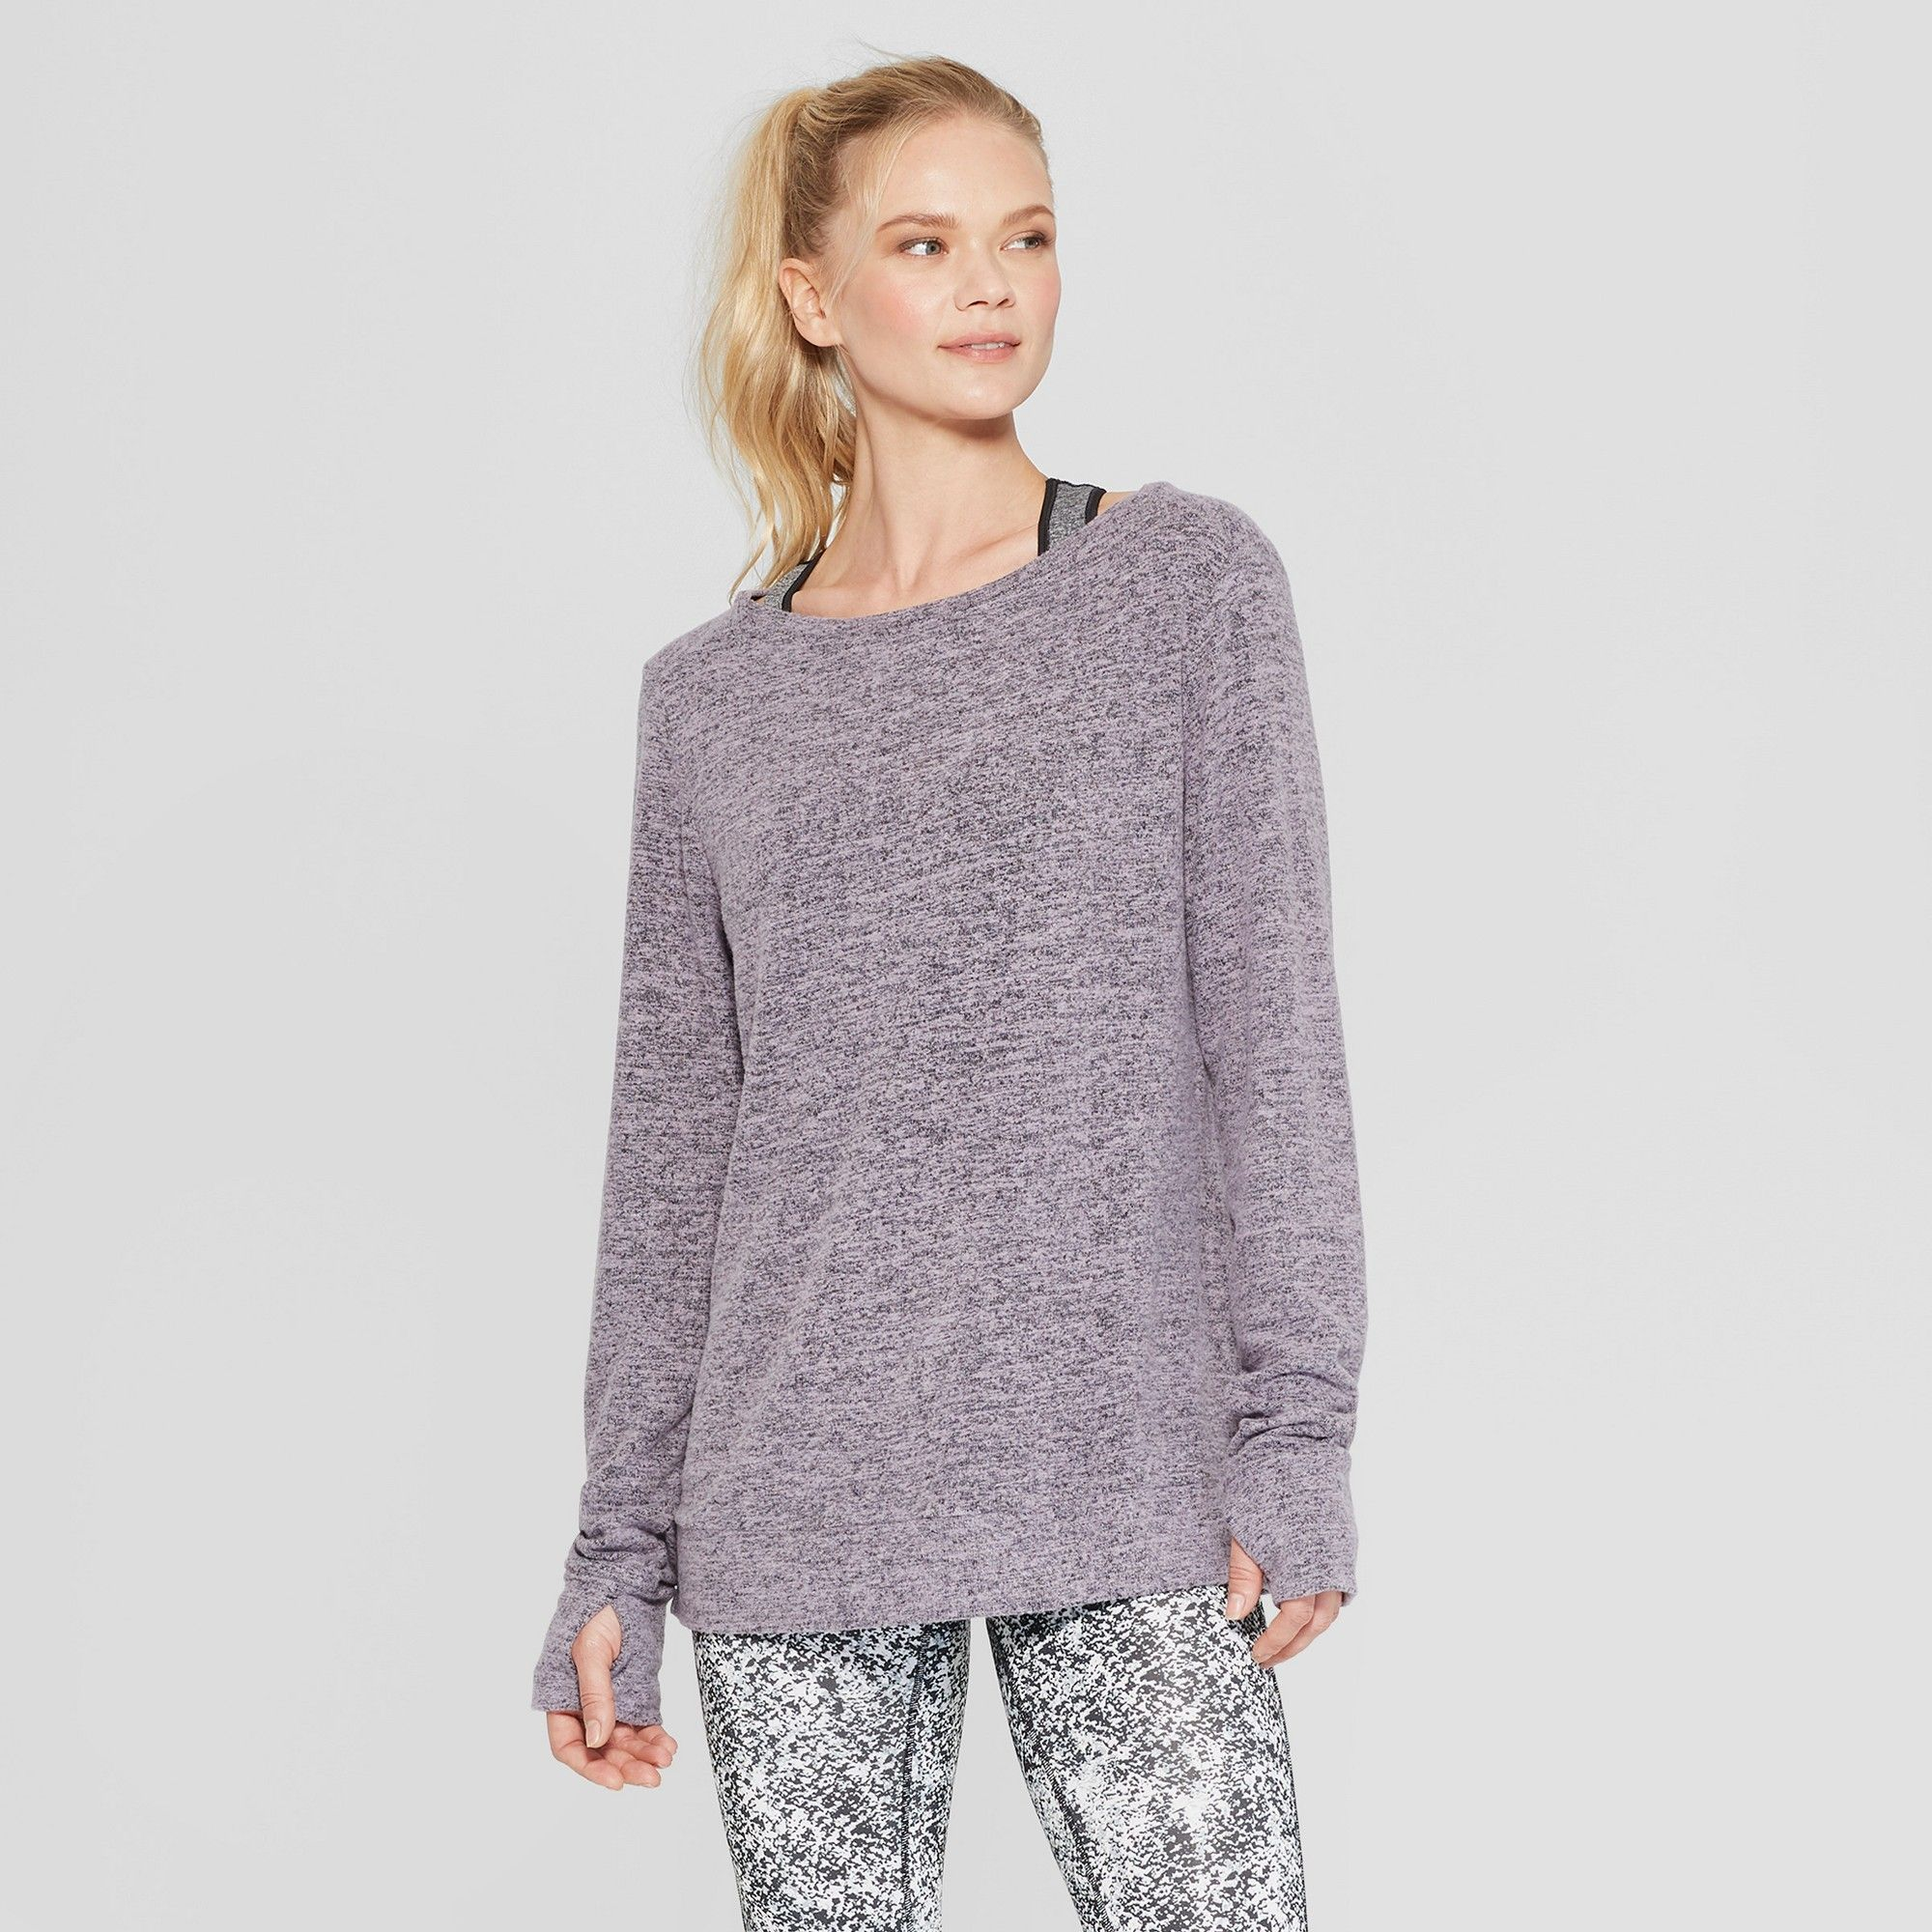 9a1301a9 Women's Long Sleeve Layering Top - C9 Champion Smoked Lilac Heather Xxl